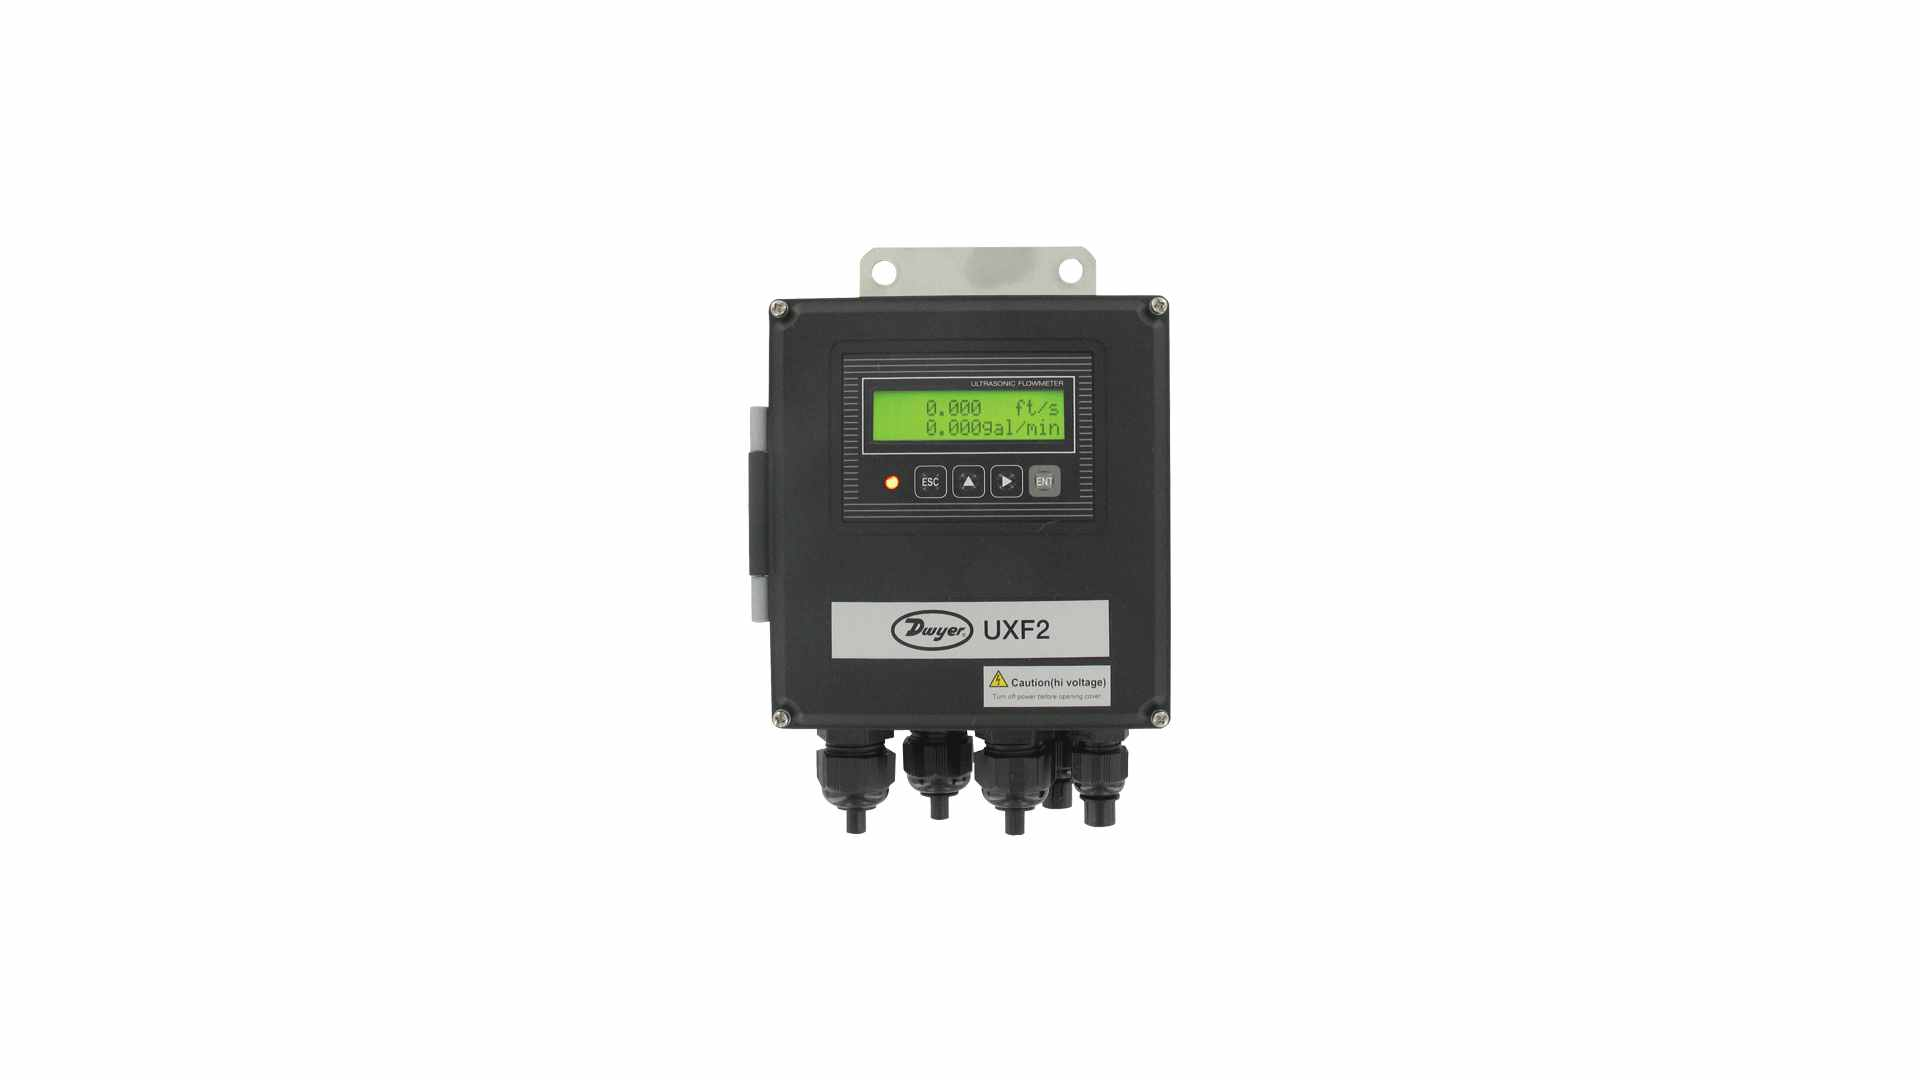 Dwyer Series UXF2 Ultrasonic Flow Converter